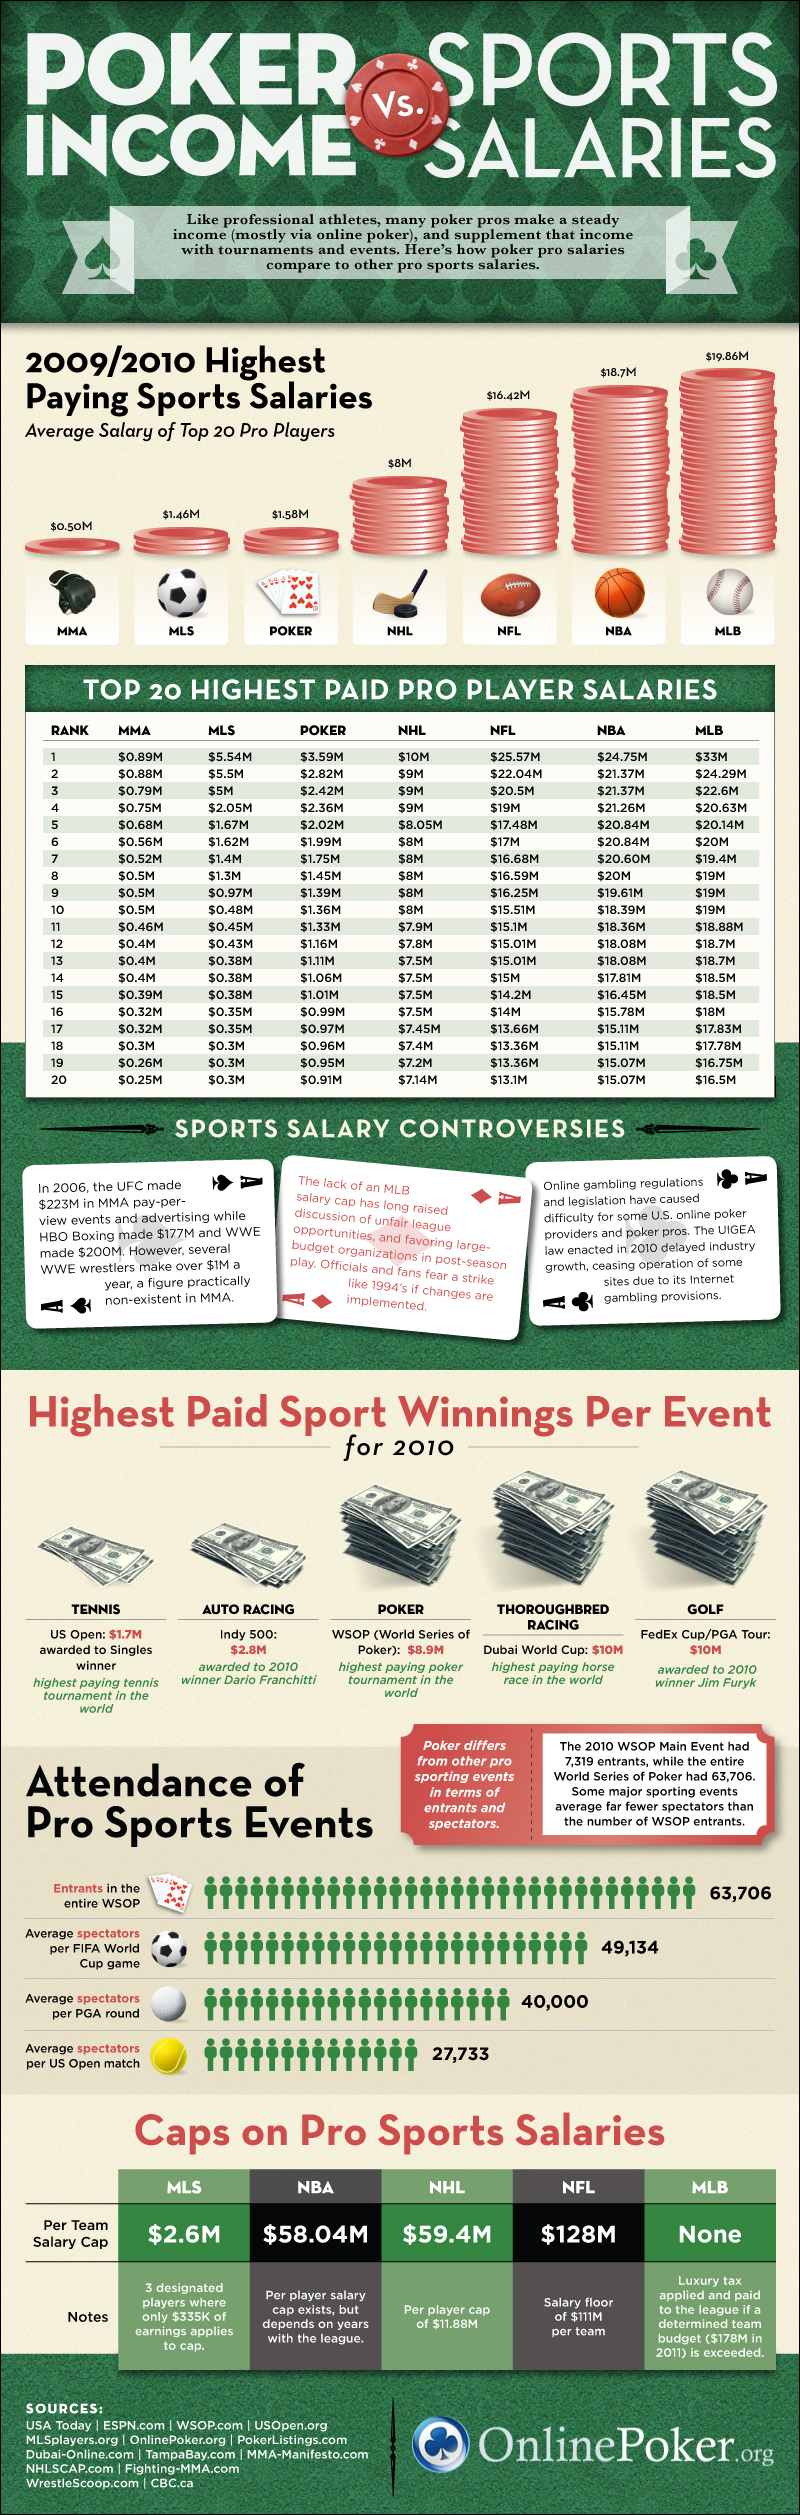 Poker Income vs Sports Salaries